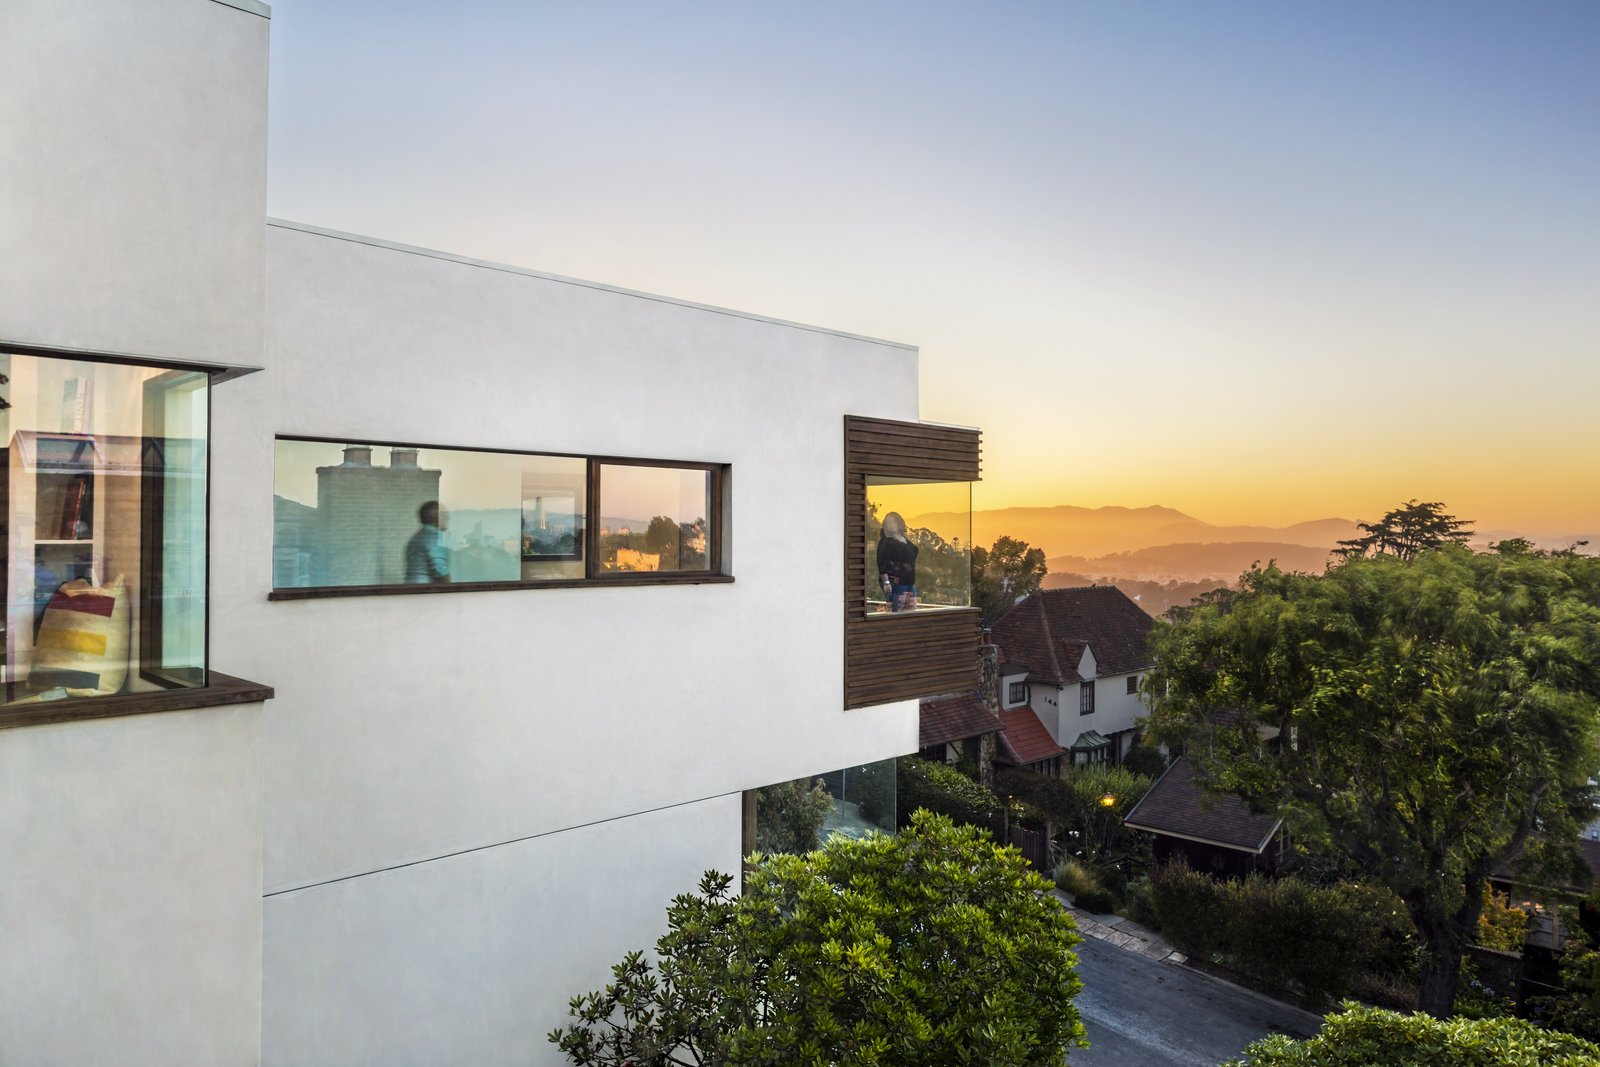 Exterior, Flat RoofLine, Glass Siding Material, Wood Siding Material, and House Building Type The peaked roofline of the original home was flattened, while corner windows take advantage of staggering city views.  Best Photos from Before & After: A Data Scientist Renovates His Childhood Home in San Francisco